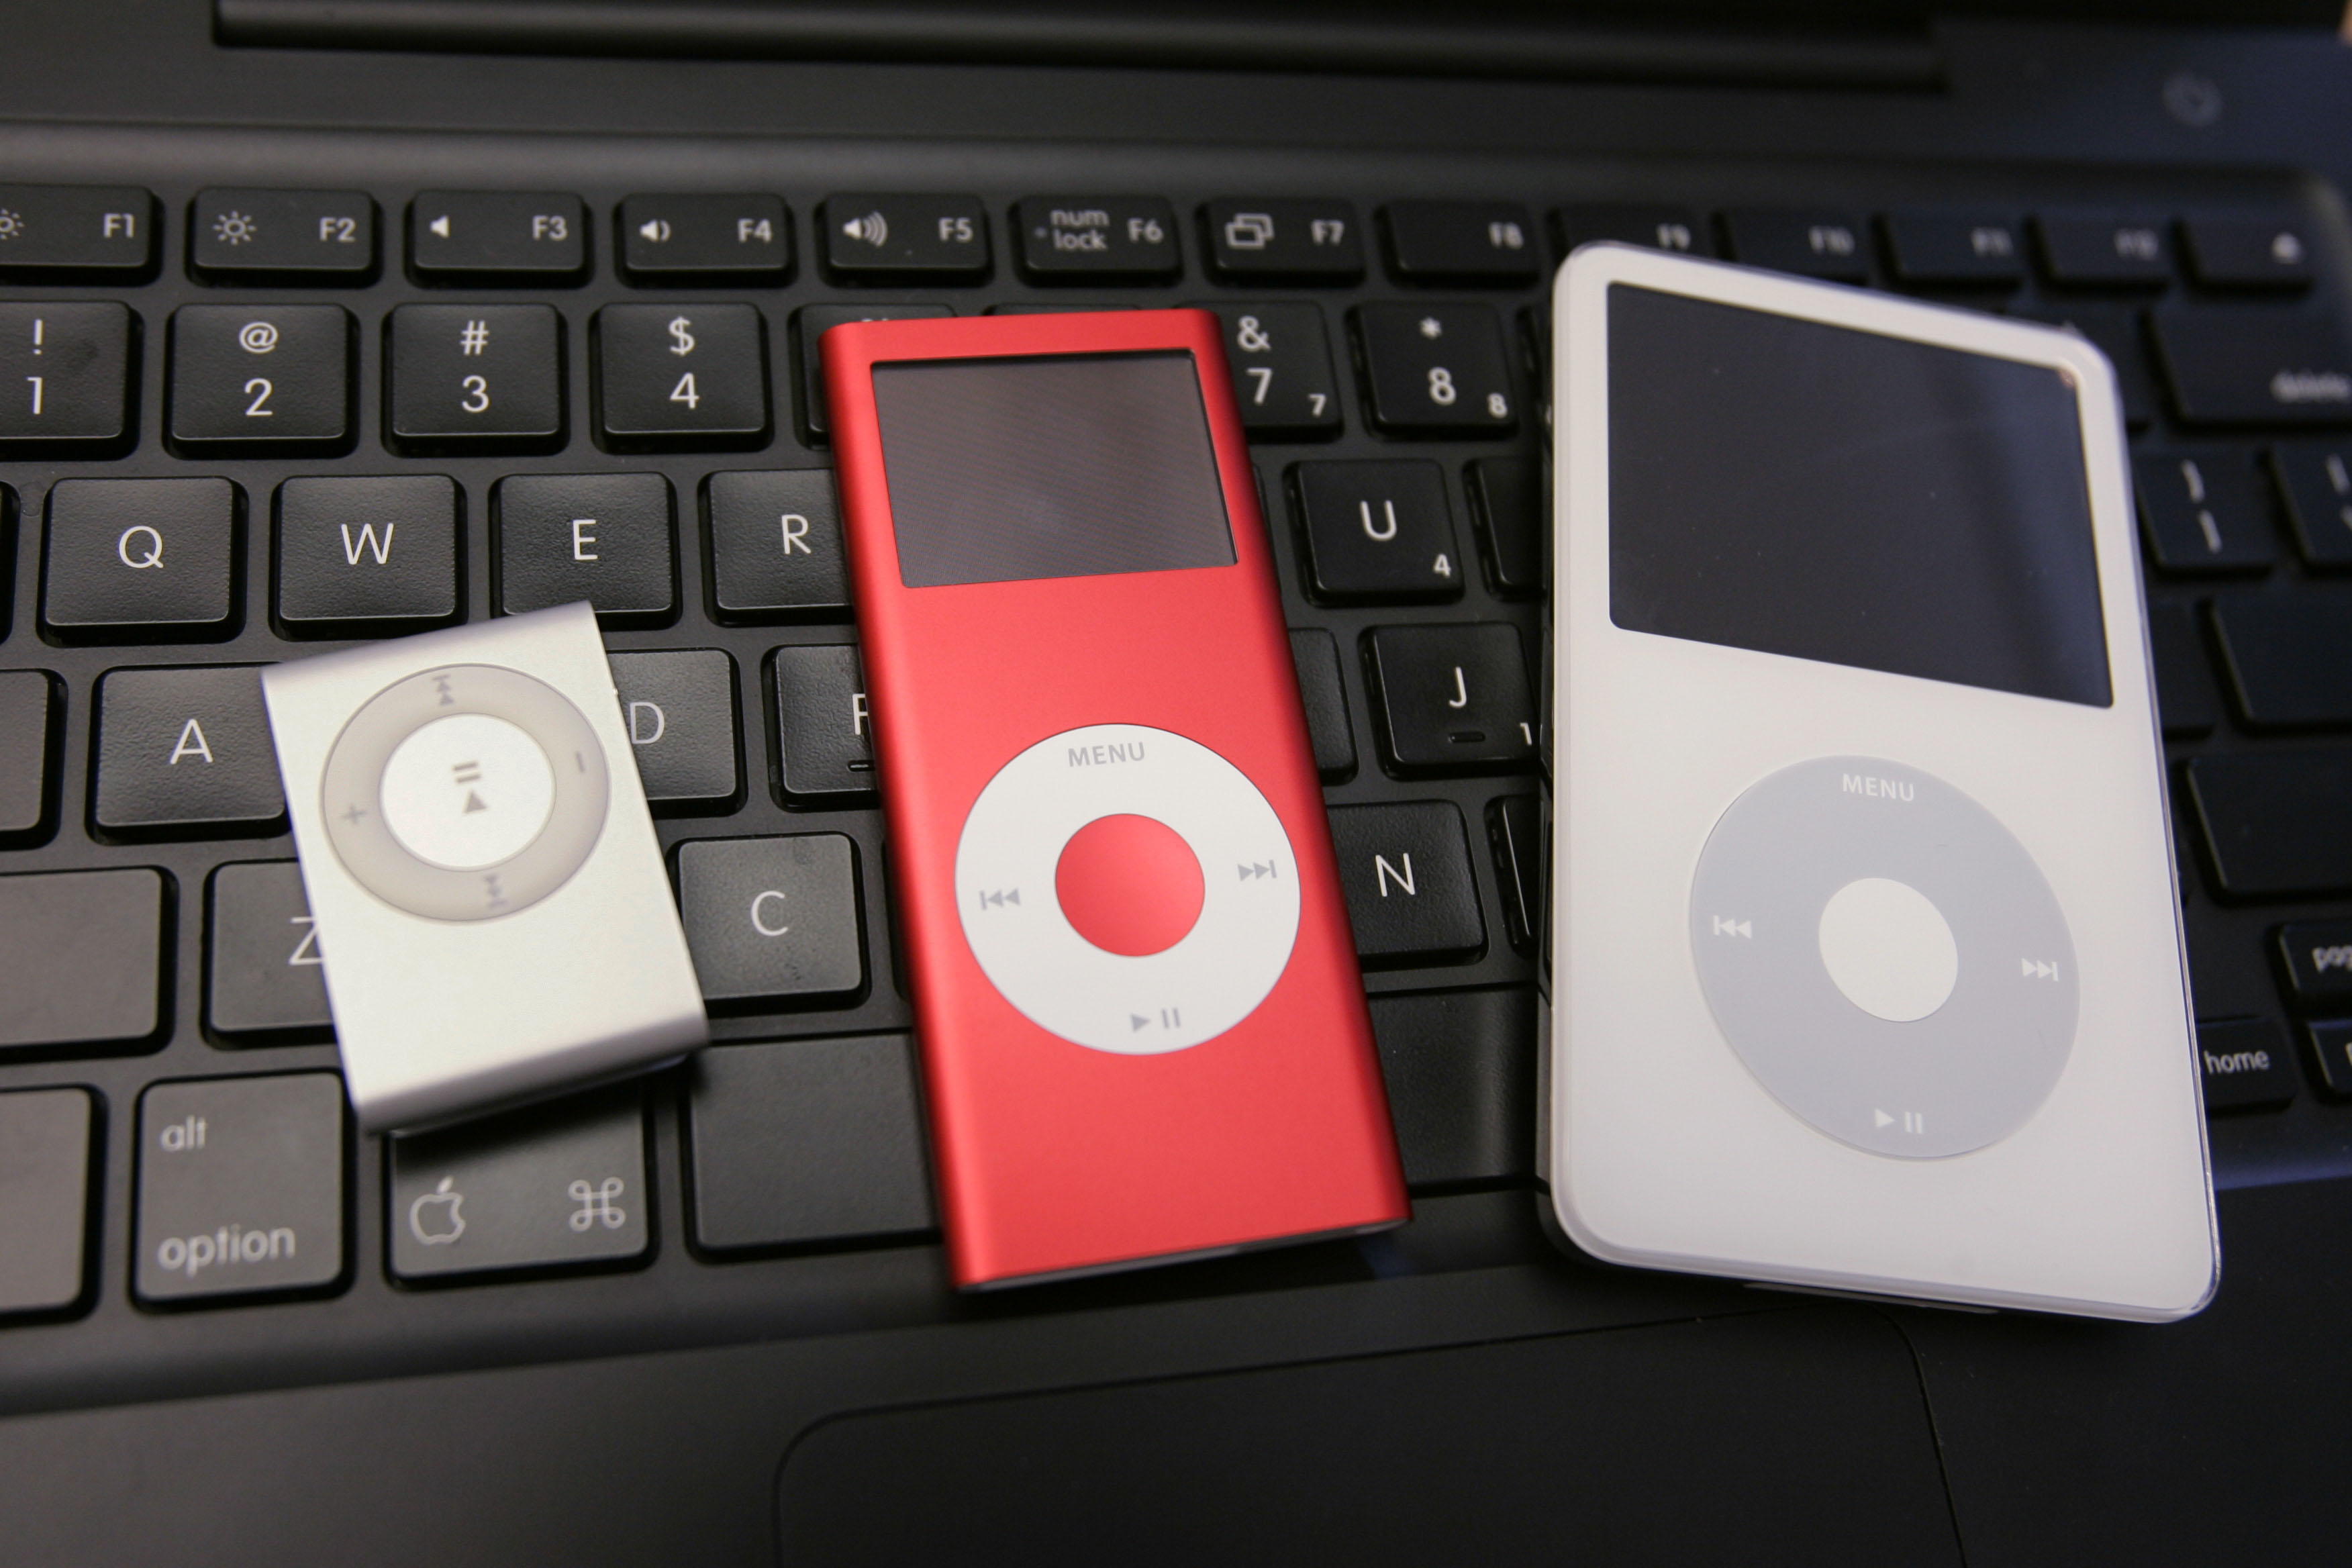 <div class='meta'><div class='origin-logo' data-origin='AP'></div><span class='caption-text' data-credit='AP Photo/Paul Sakuma'>The new Apple iPod Shuffle, left, is shown next to a Red iPod Nano, center, and 60GB iPod, right, at an Apple store in Palo Alto, Calif., Friday, Nov. 3, 2006.</span></div>